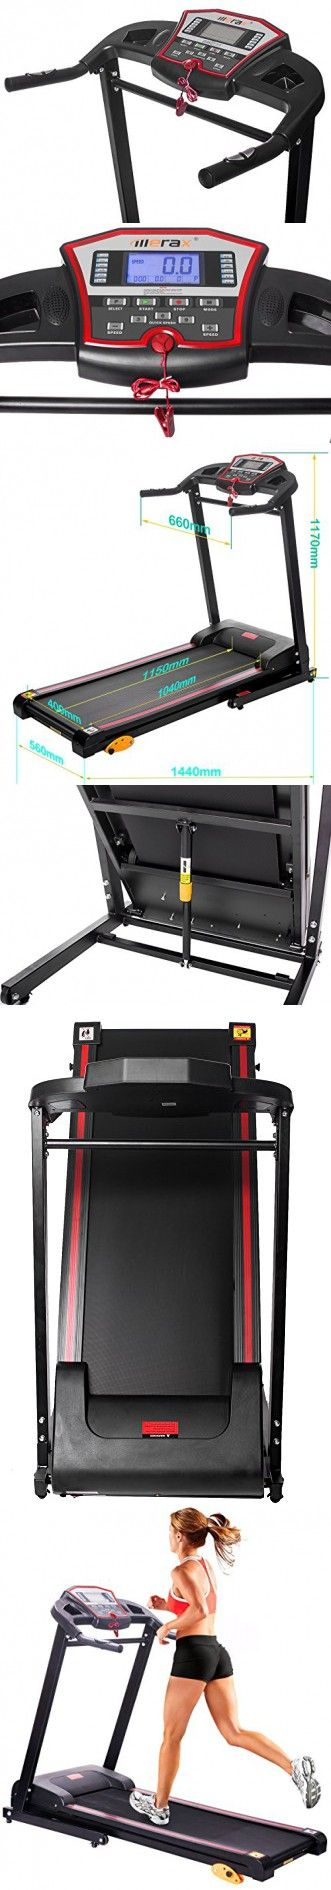 Merax 1.5HP Folding Electric Treadmill Motorized Running Machine (Black)